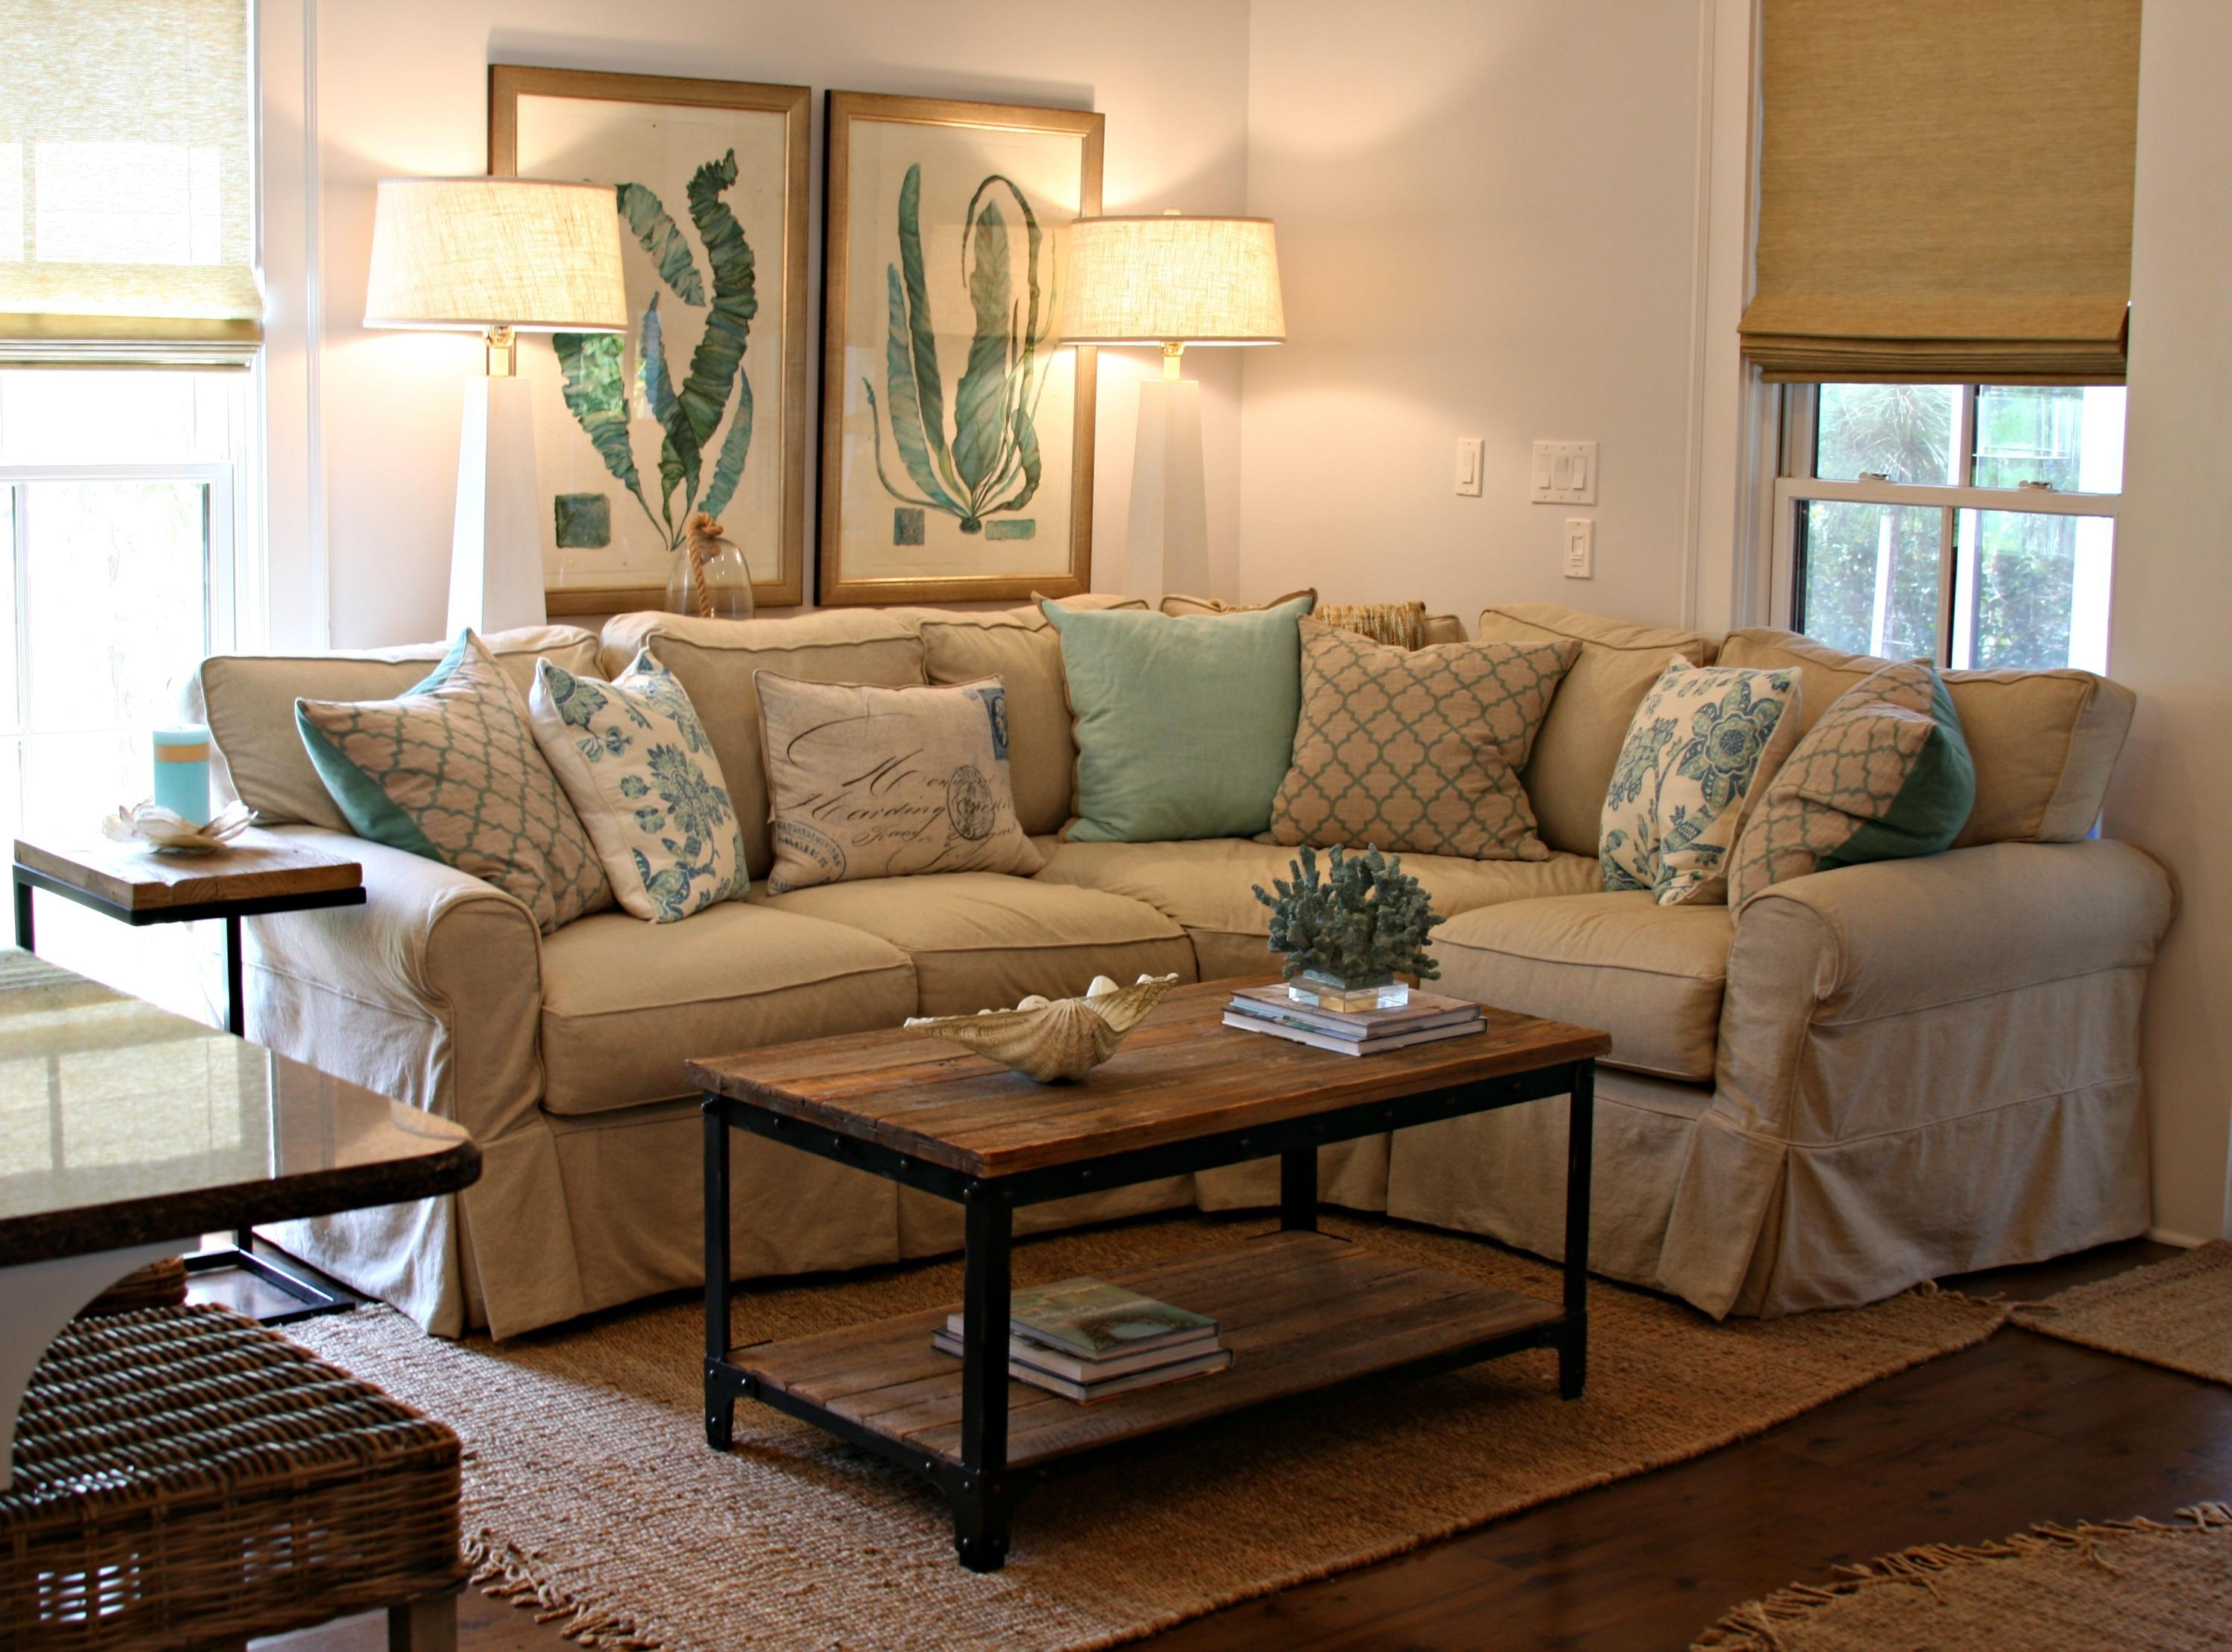 Country Sofas And Chairs | Tehranmix Decoration Within Country Cottage Sofas And Chairs (Image 15 of 20)